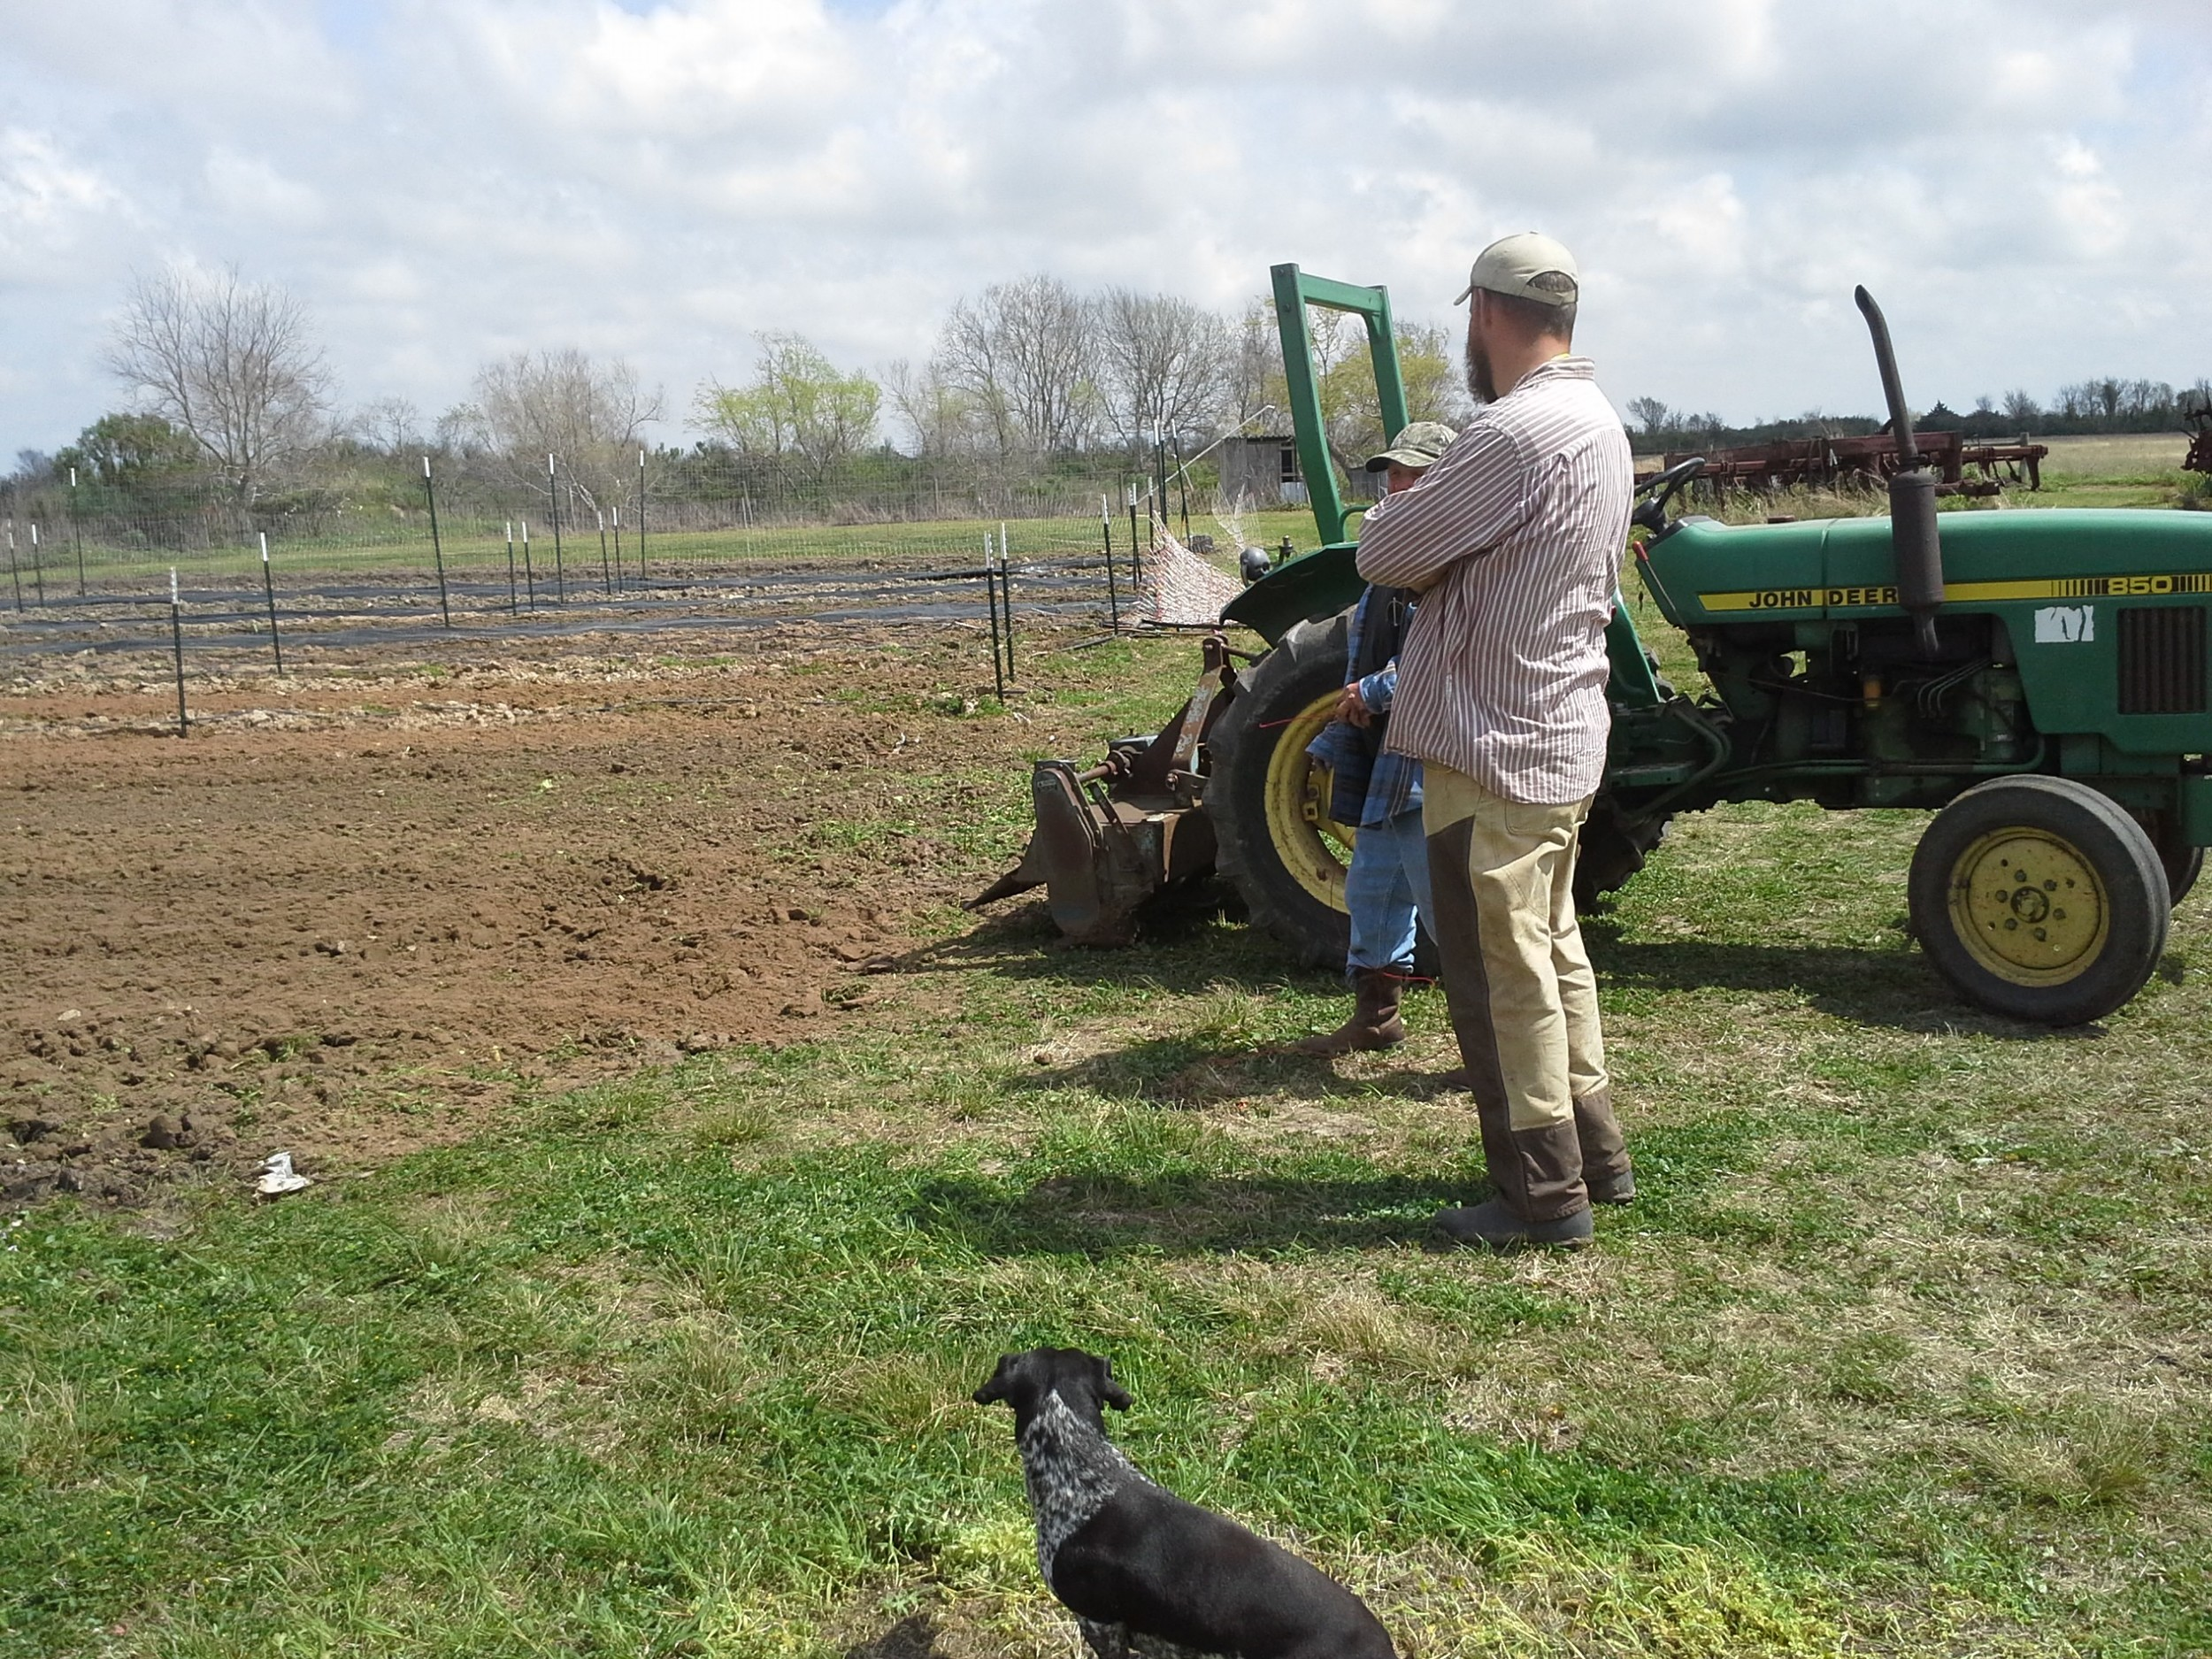 McFarmer mulls tilling options with our neighbor.